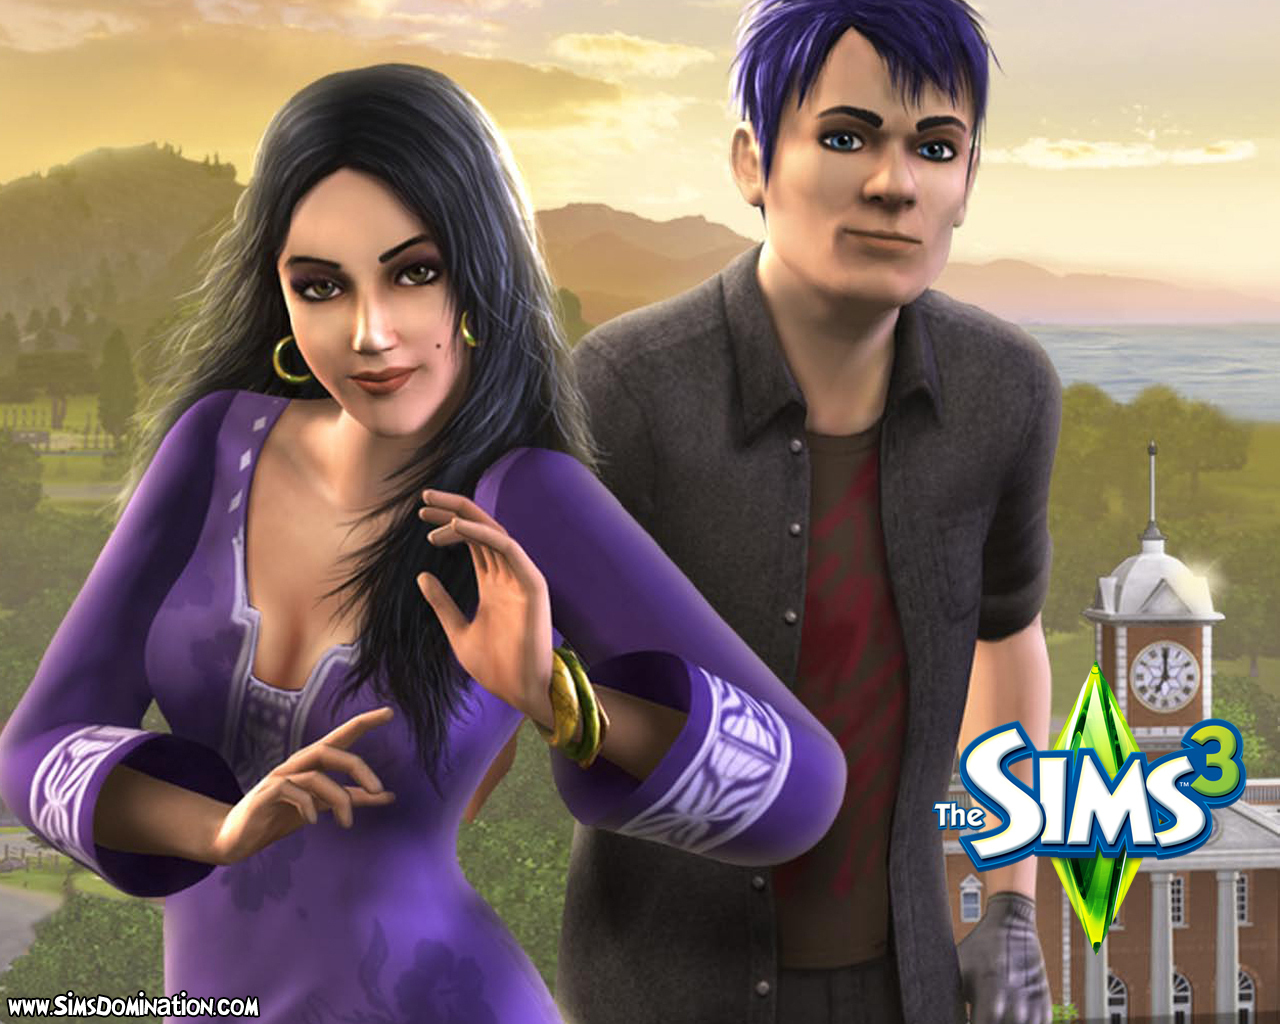 SIMS 3 - The Sims 3 Wallpaper (6725973) - Fanpop fanclubs